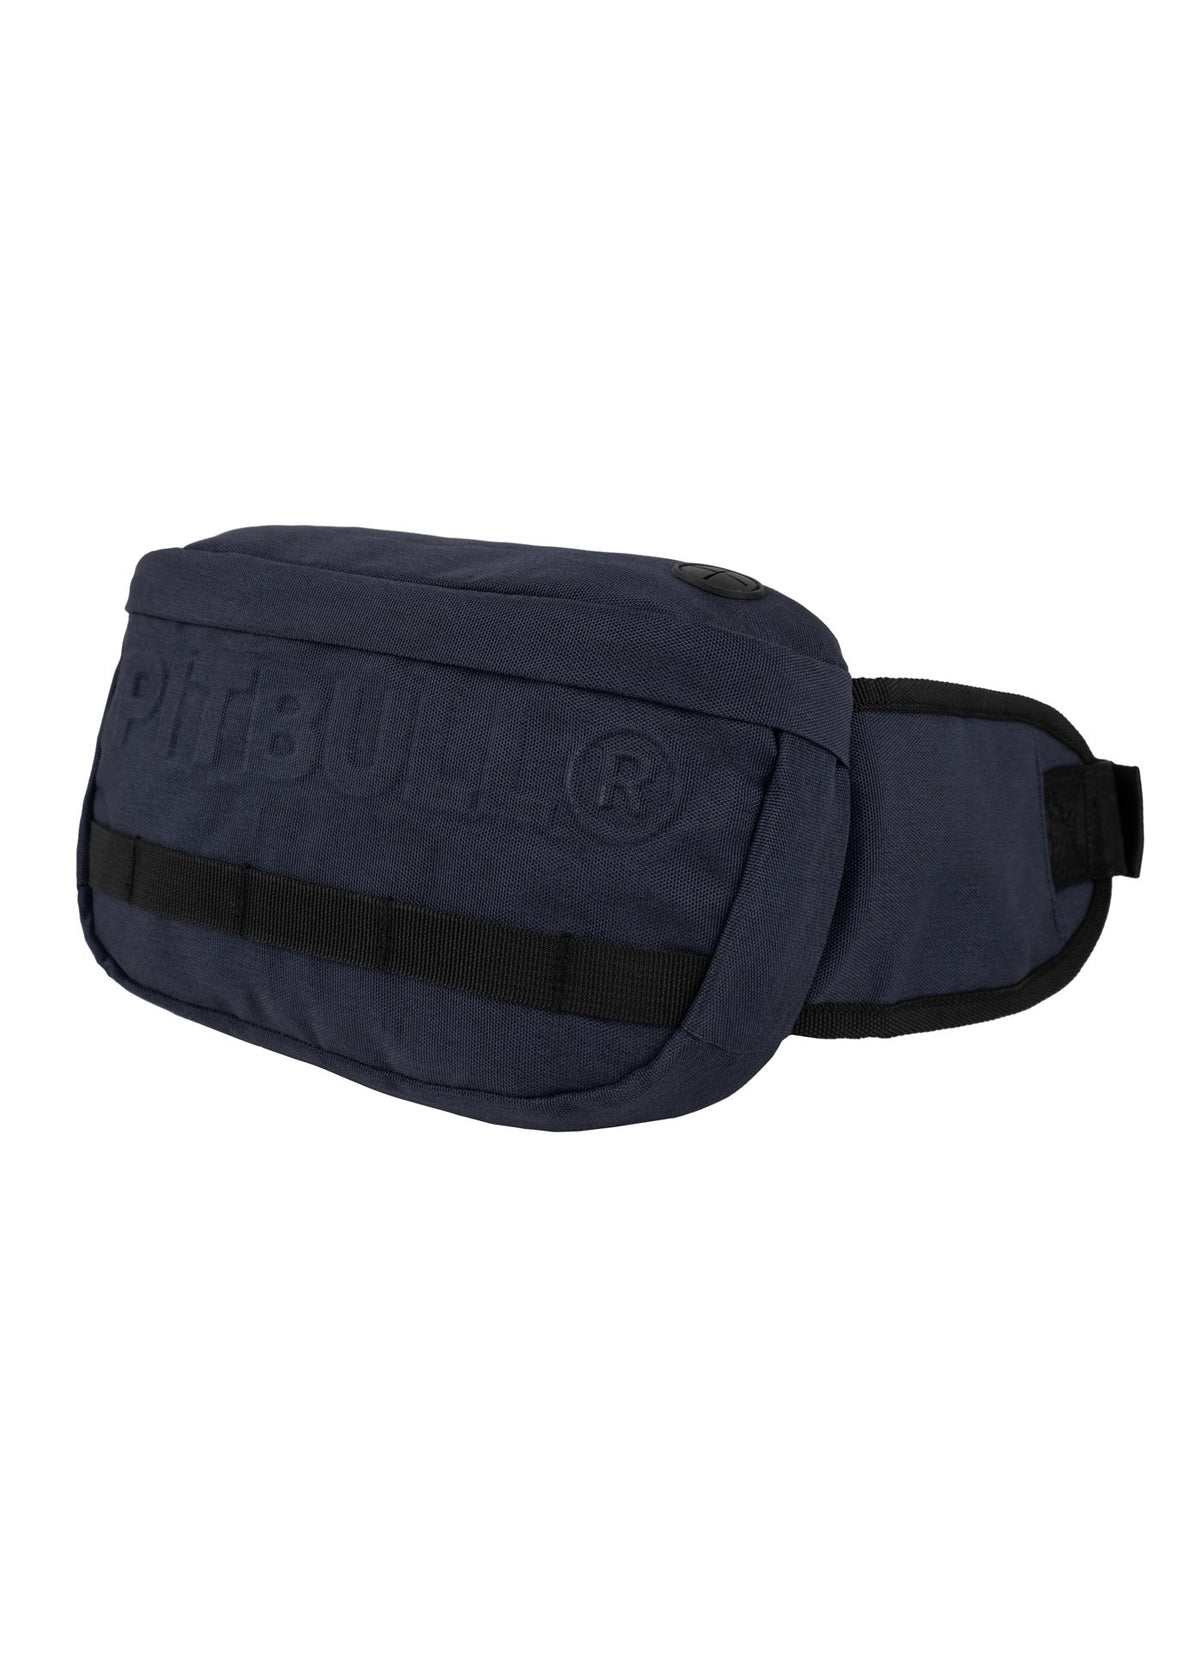 WAISTBAG PITBULL R DARK NAVY - Pitbull West Coast U.S.A.